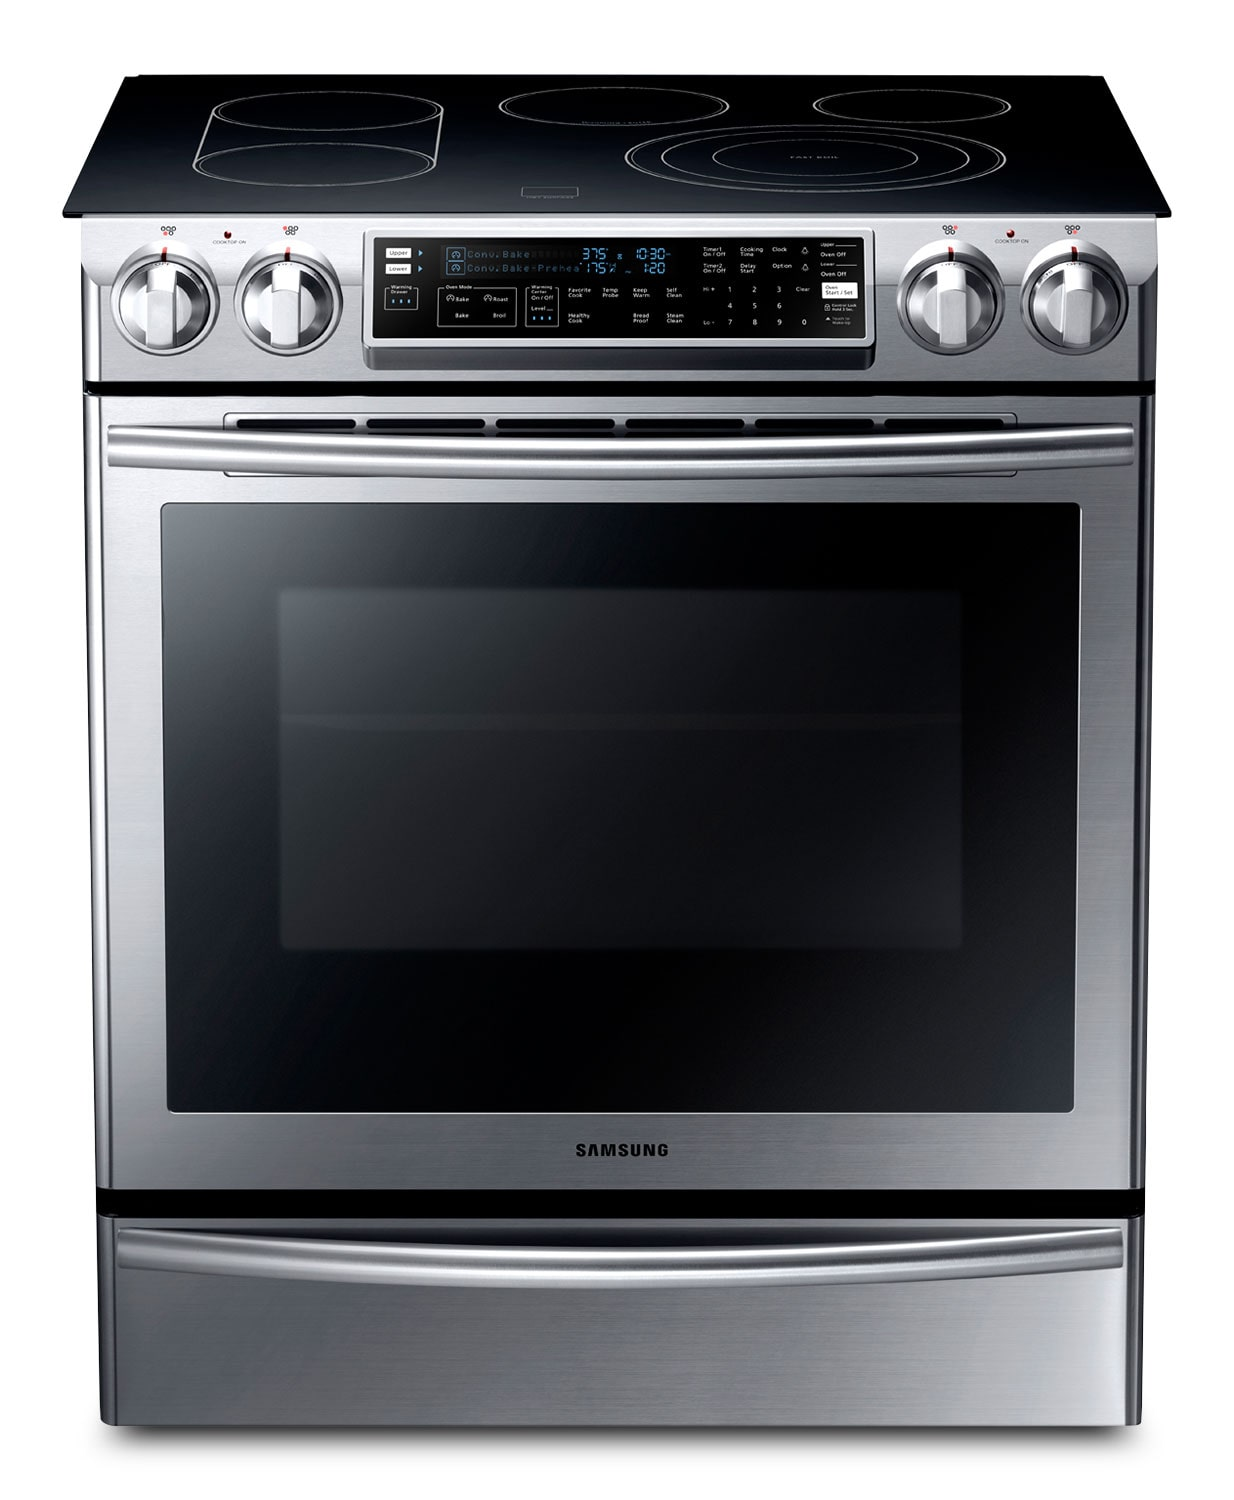 Samsung Stainless Steel Slide-In Electric Convection Range (5.8 Cu. Ft.) - NE58F9710WS